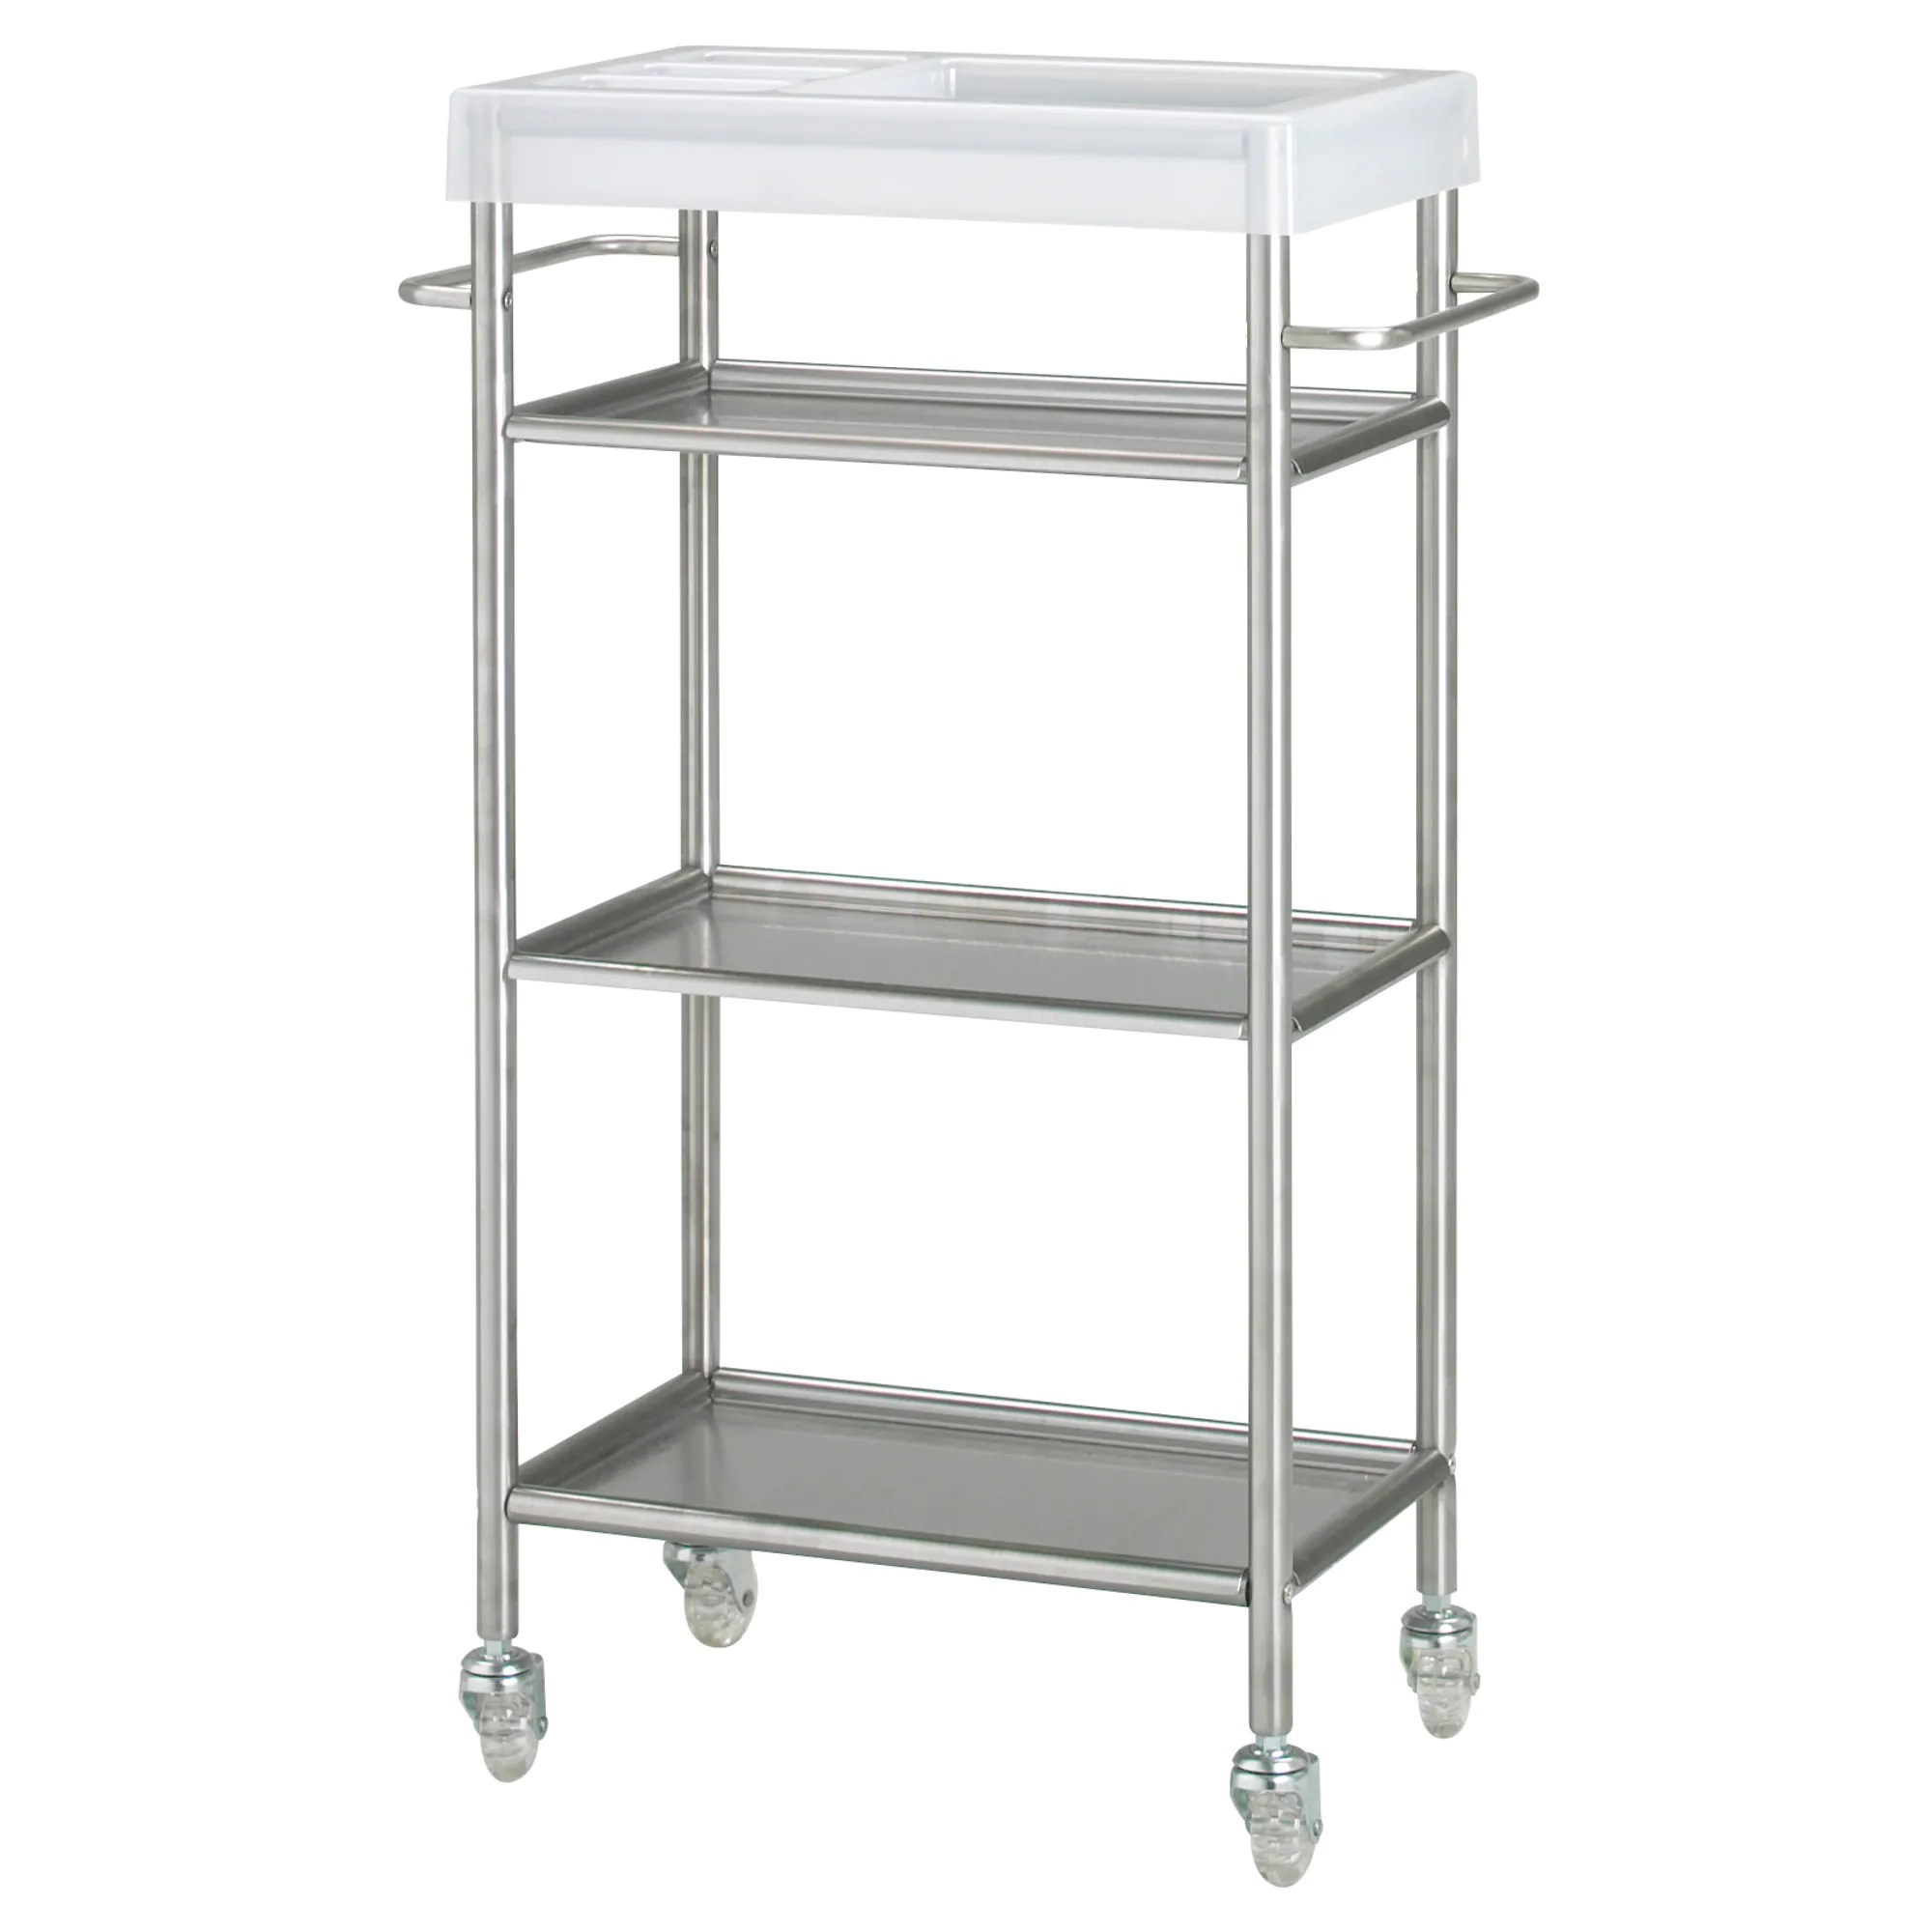 stainless kitchen cart 36 sink grundtal ikea this is